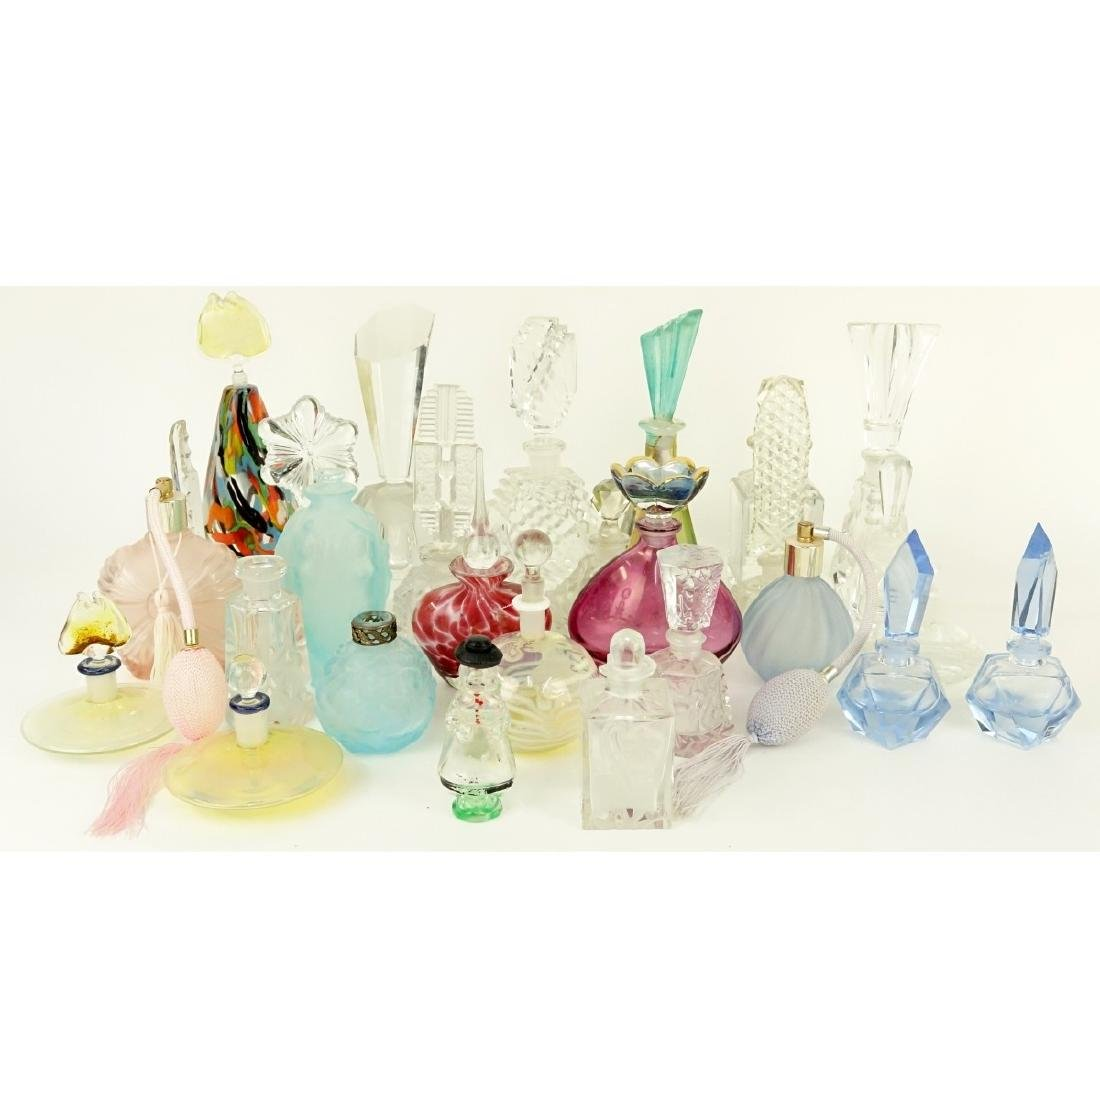 Large Collection of Vintage Perfume Bottles